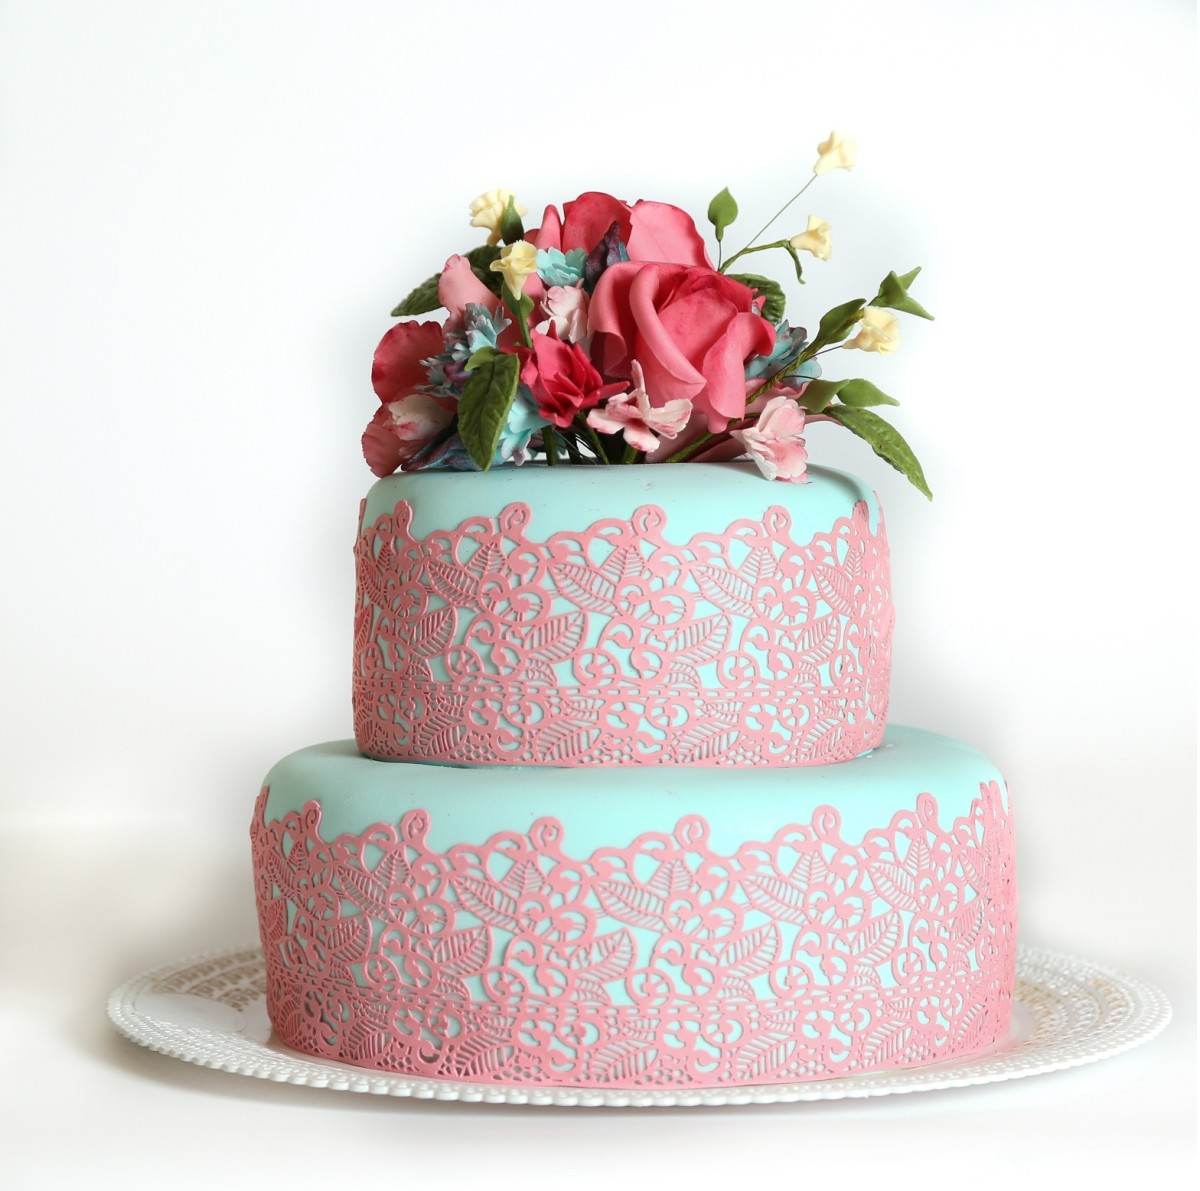 Diy Elegant Sugar Lace Cake Trim With Tips From A Pro Jamie Geller